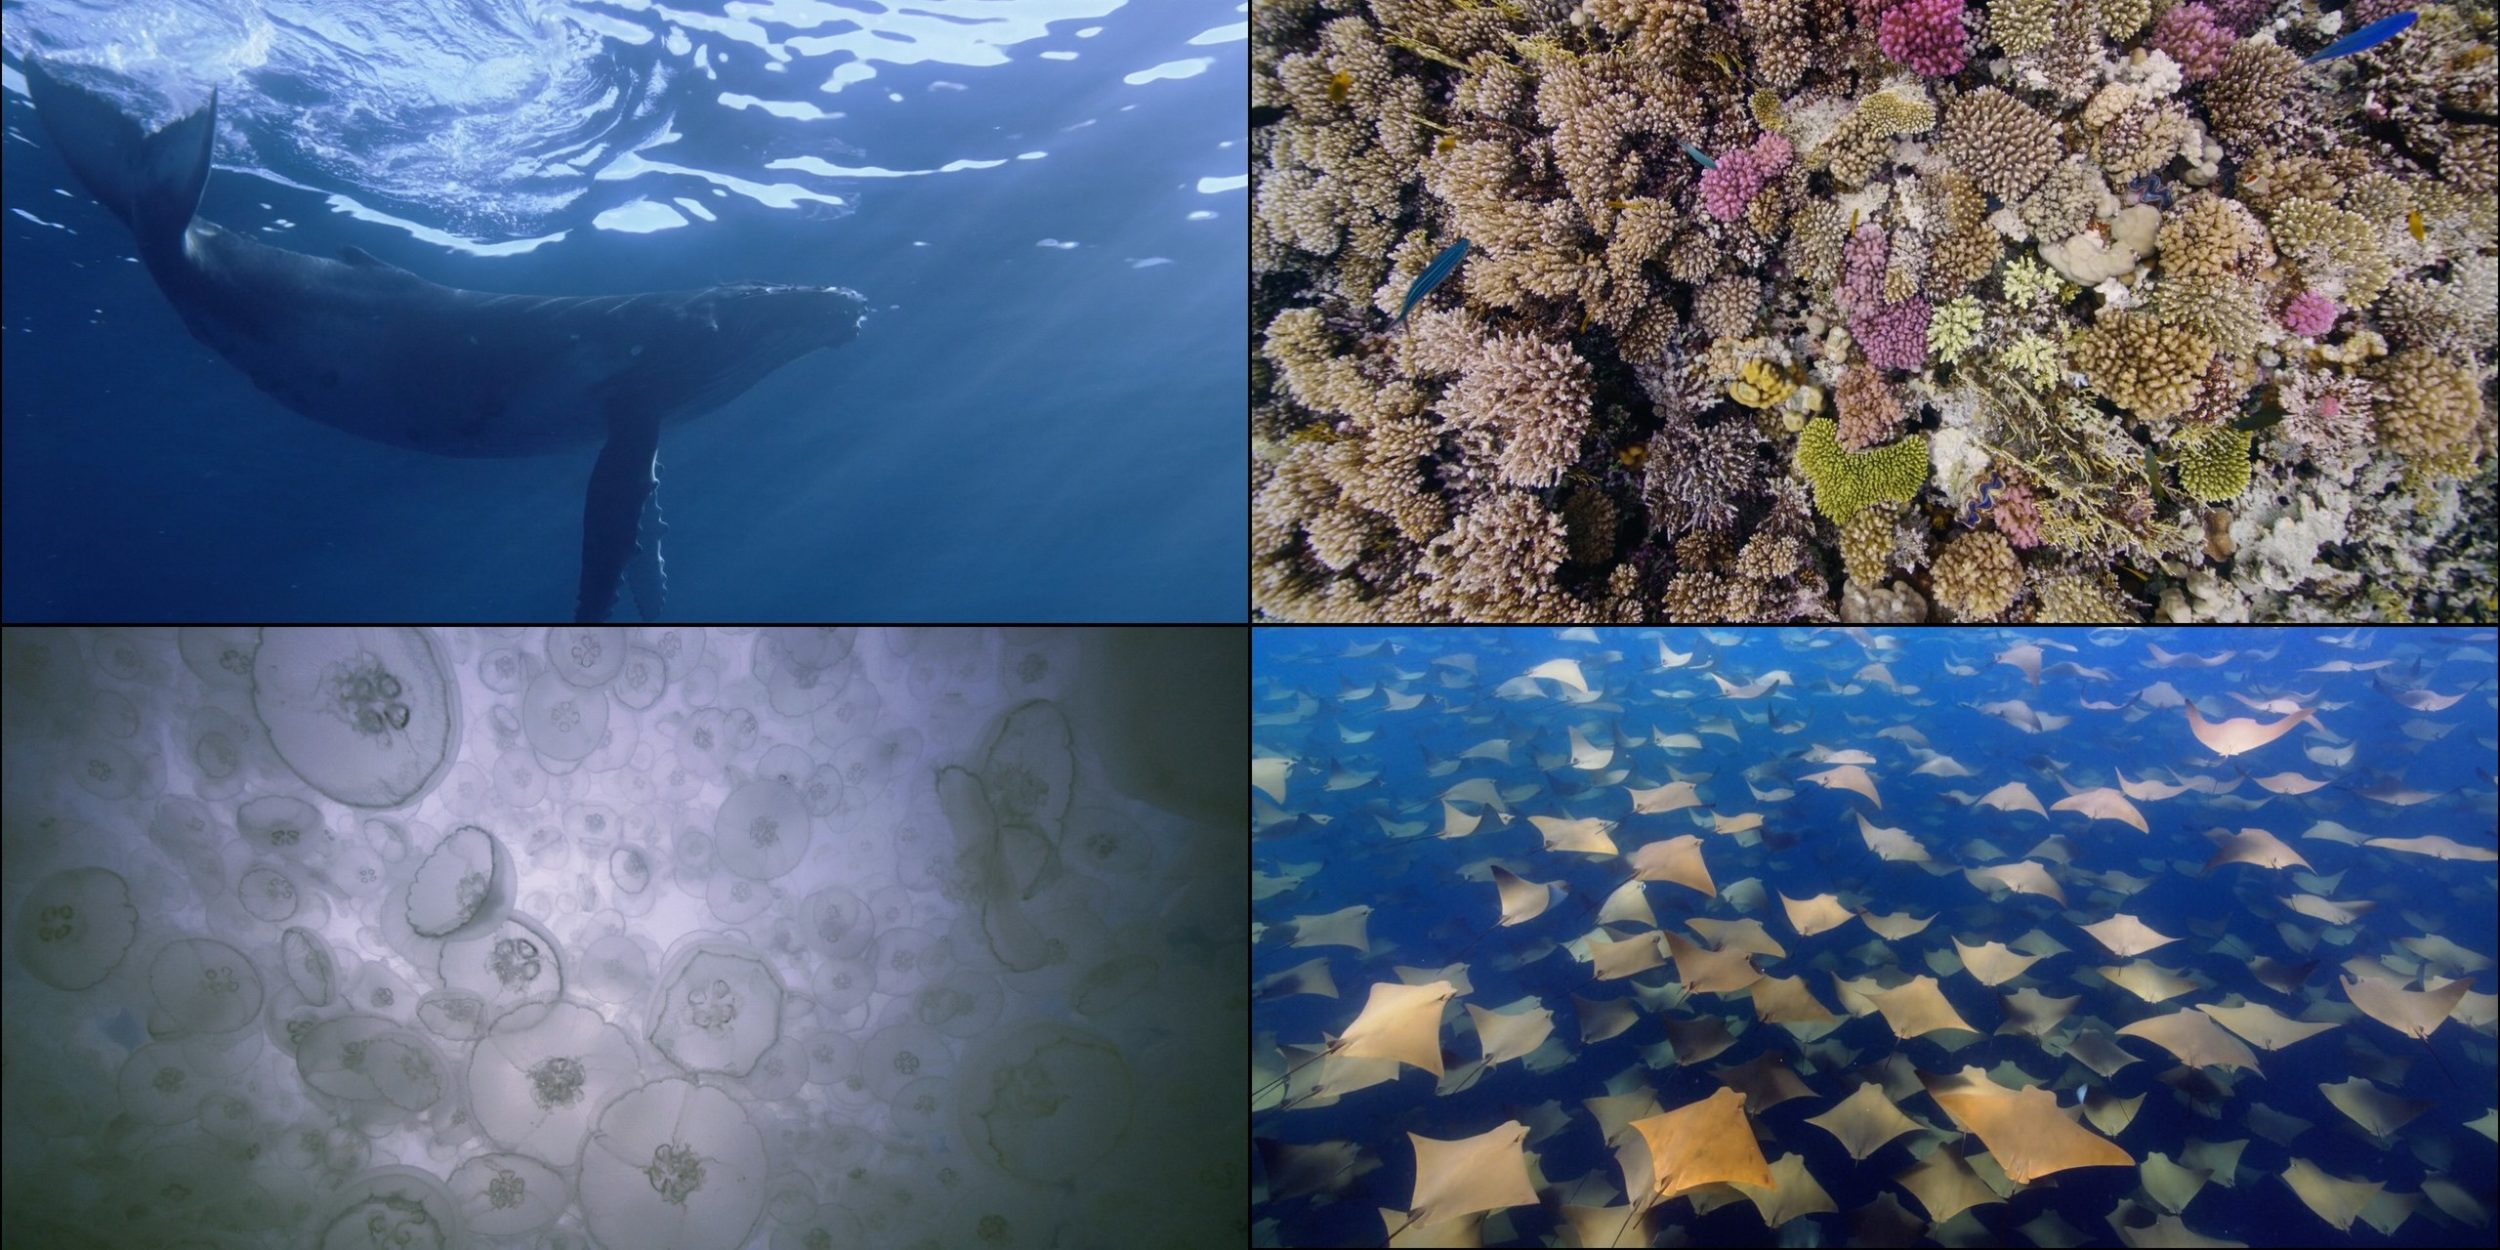 New Batch of Video Screensavers for Apple TV Released